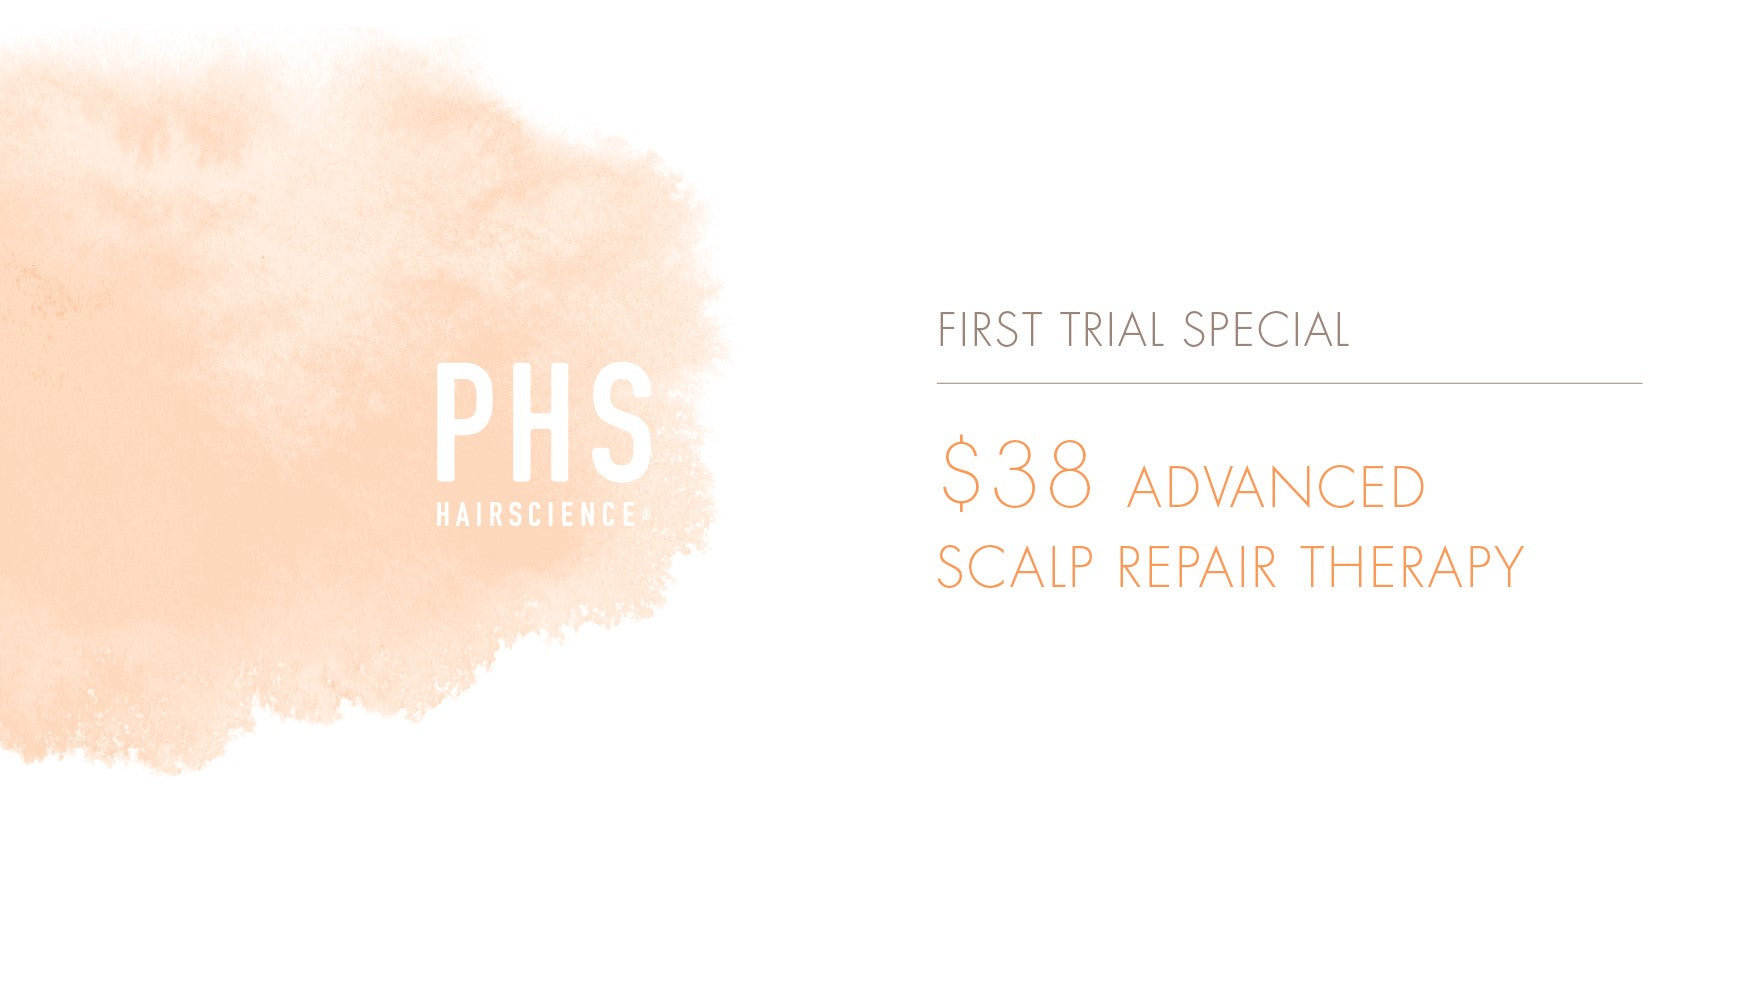 phs hairscience treatment trial scalp therapy